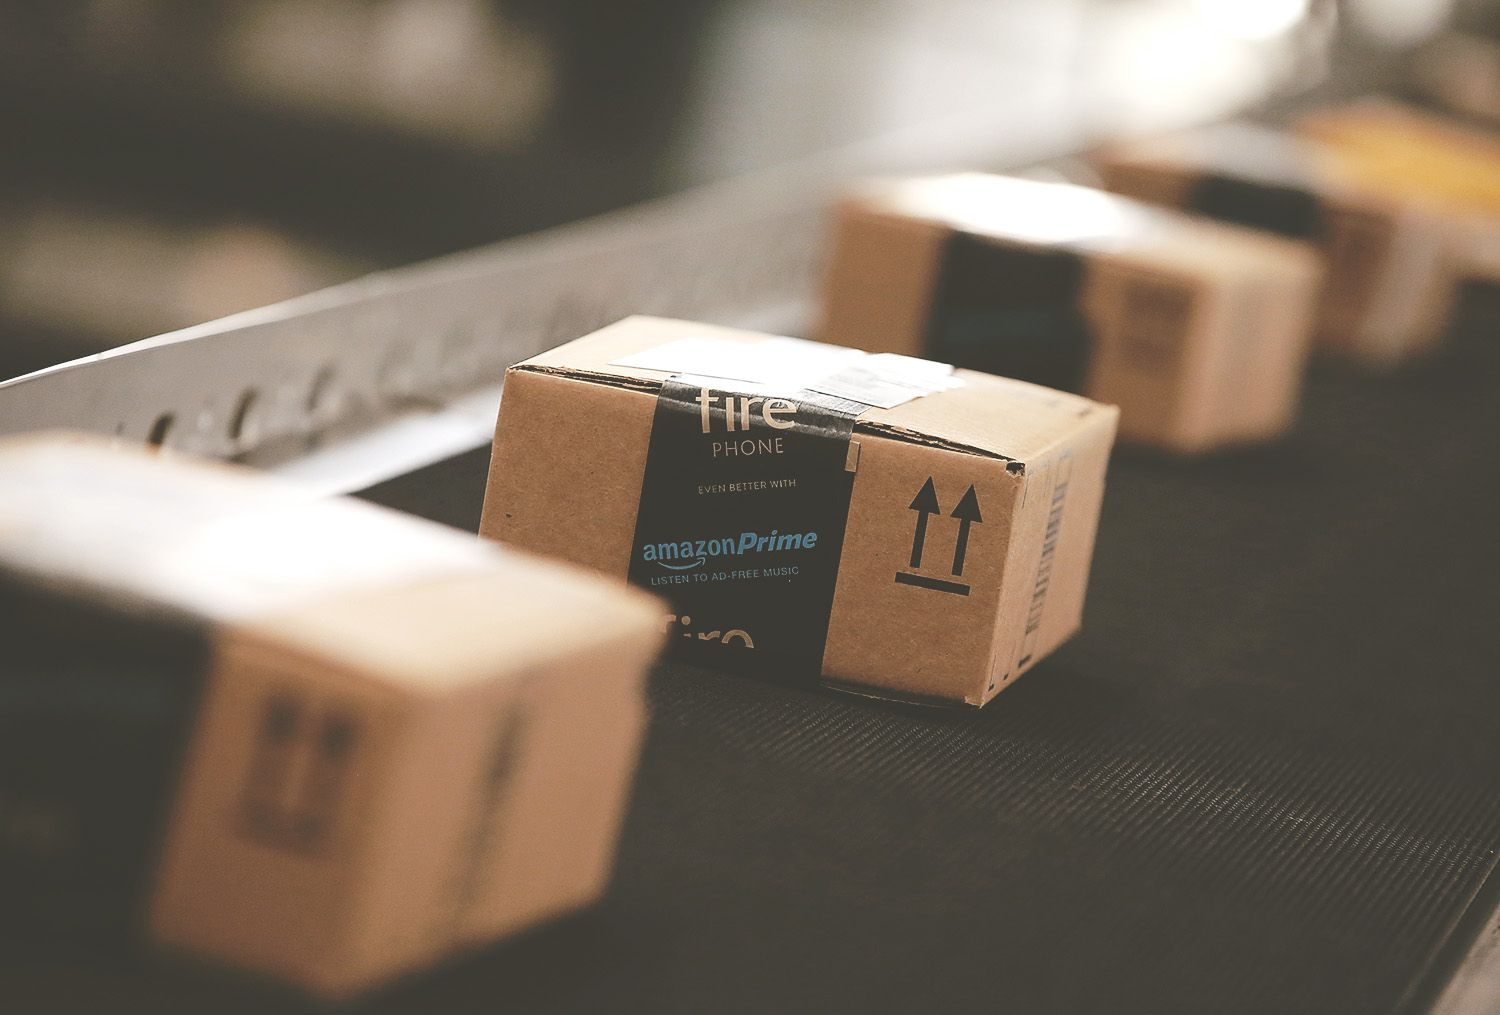 Use These Tricks to Save More on Amazon